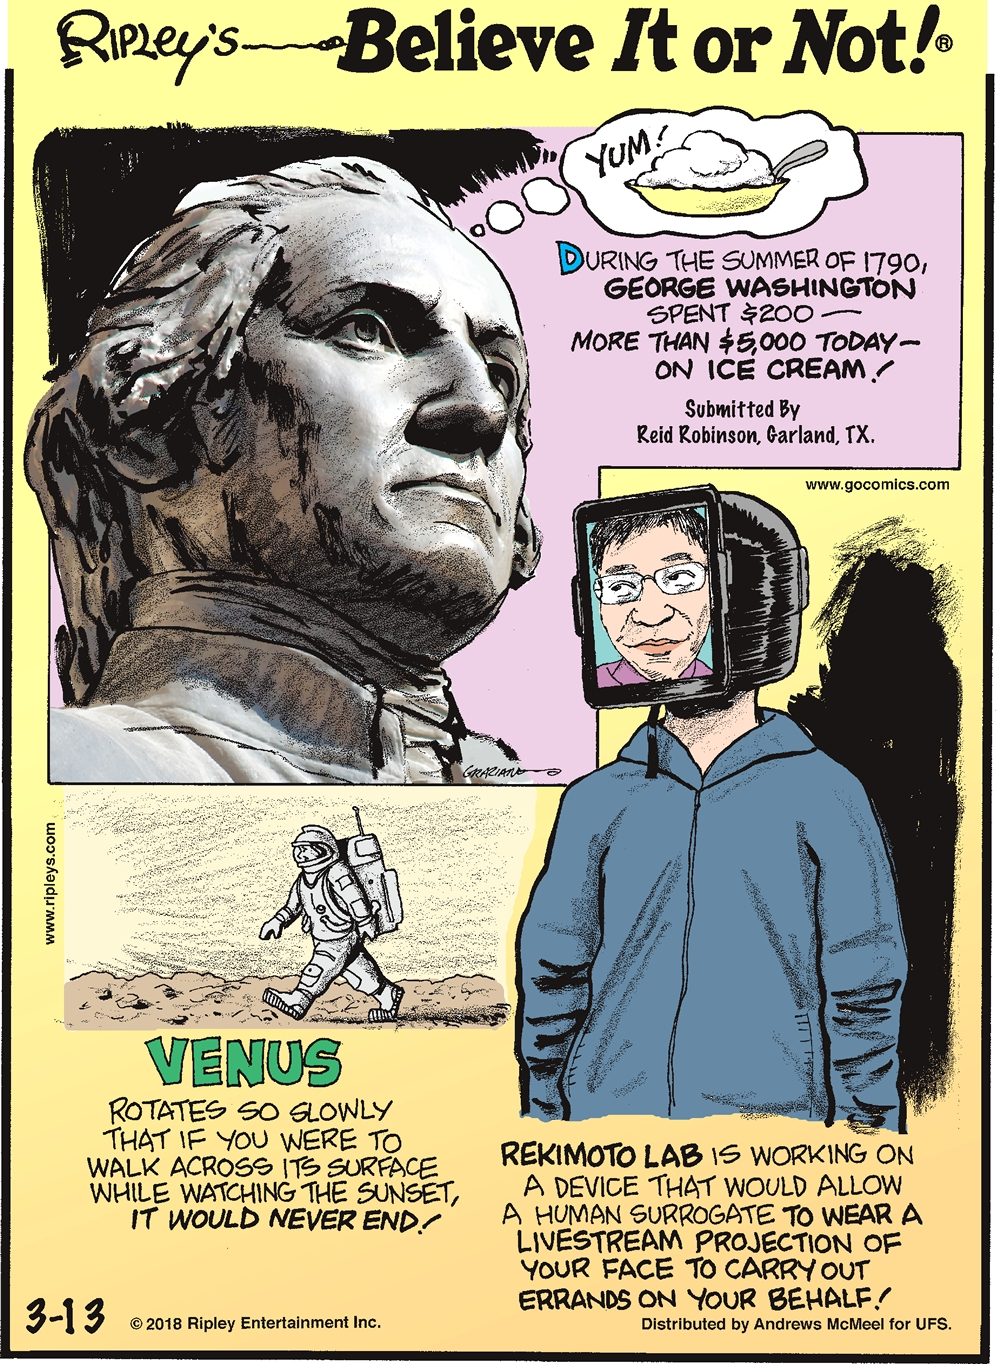 During the summer of 1790, George Washington spent $200 - more than $5,000 today - on ice cream! Submitted by Reid Robinson, Garland, TX.-------------------- Venus rotates so slowly that if you were to walk across its surface while watching the sunset, it would never end!-------------------- Rekimoto Lab is working on a device that would allow a human surrogate to wear a livestream projection of your face to carry out errands on your behalf!